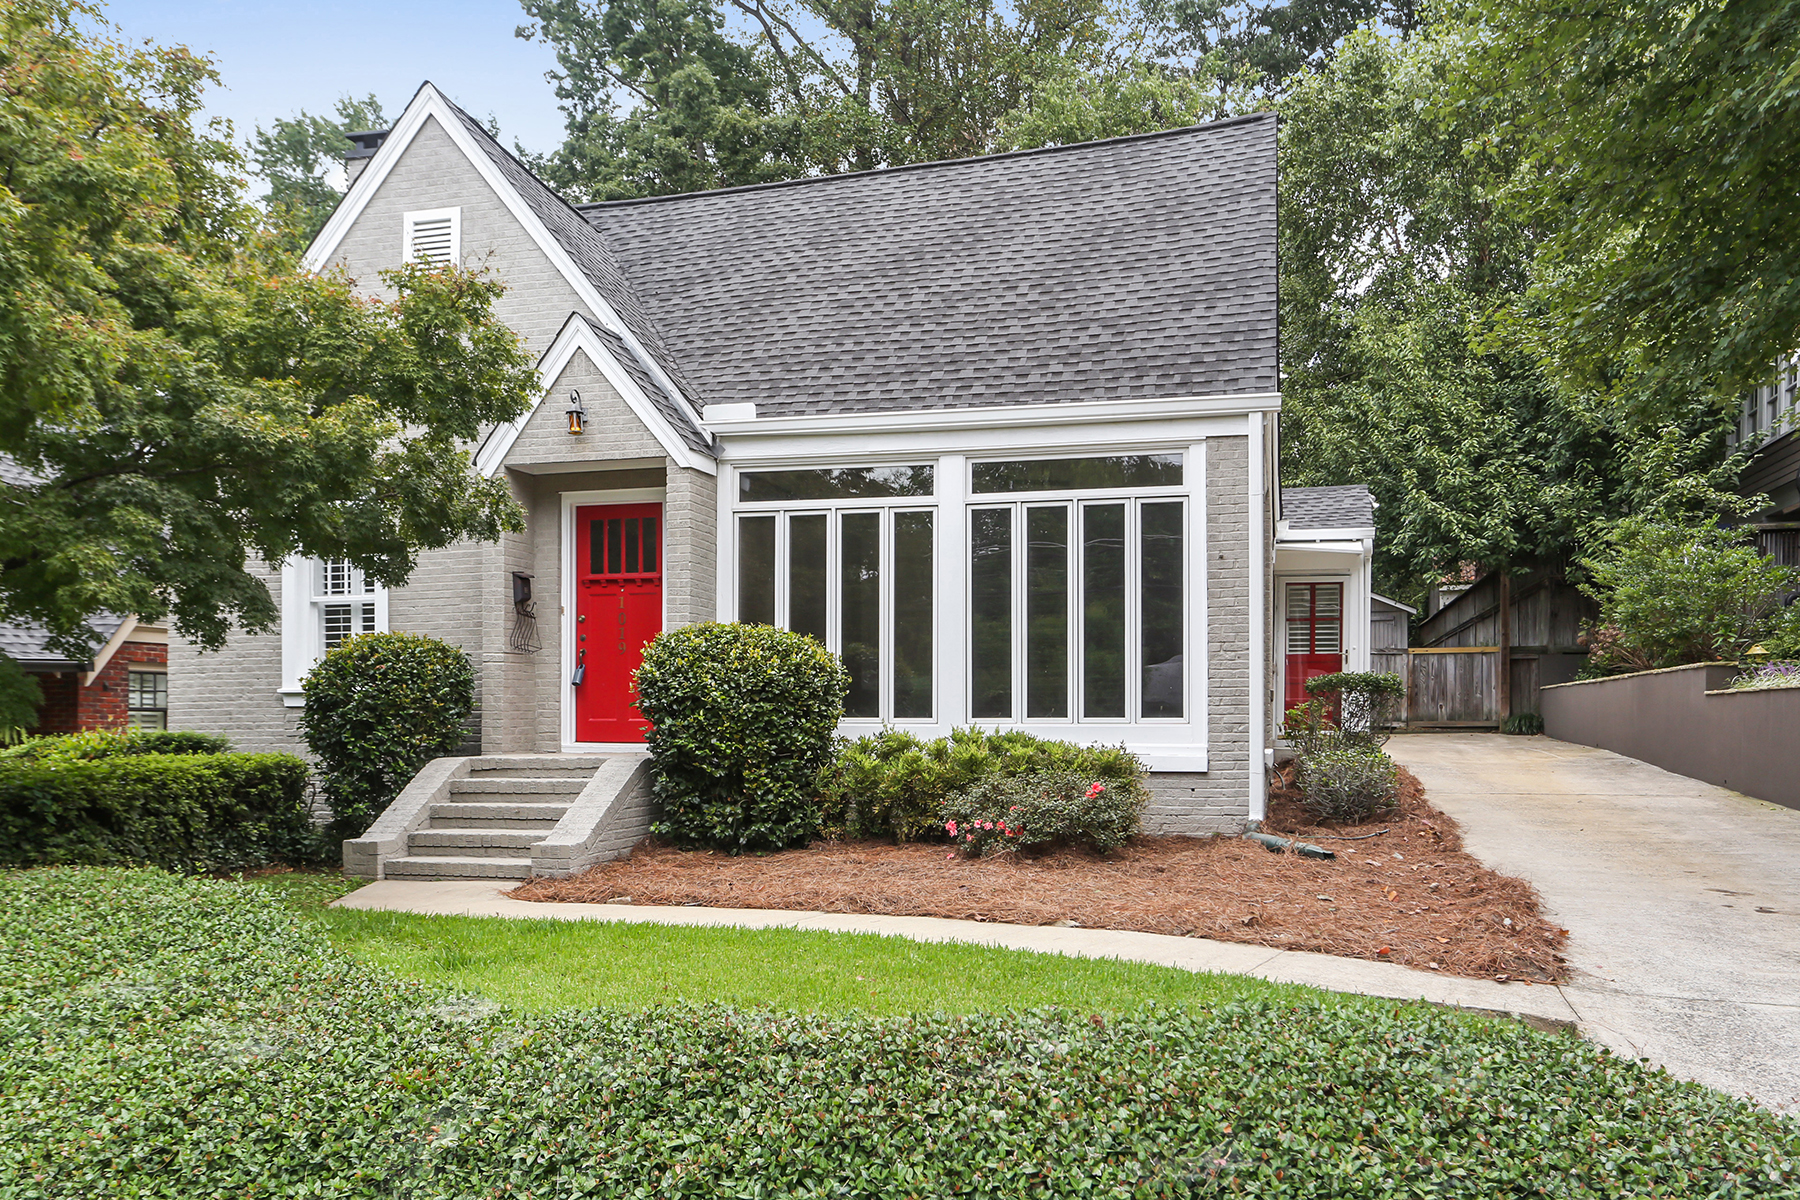 Single Family Home for Sale at Charming Three Bedroom, Two Bath Brick Home in The Heart of Virginia Highland! 1019 Virginia Ave Atlanta, Georgia 30306 United States